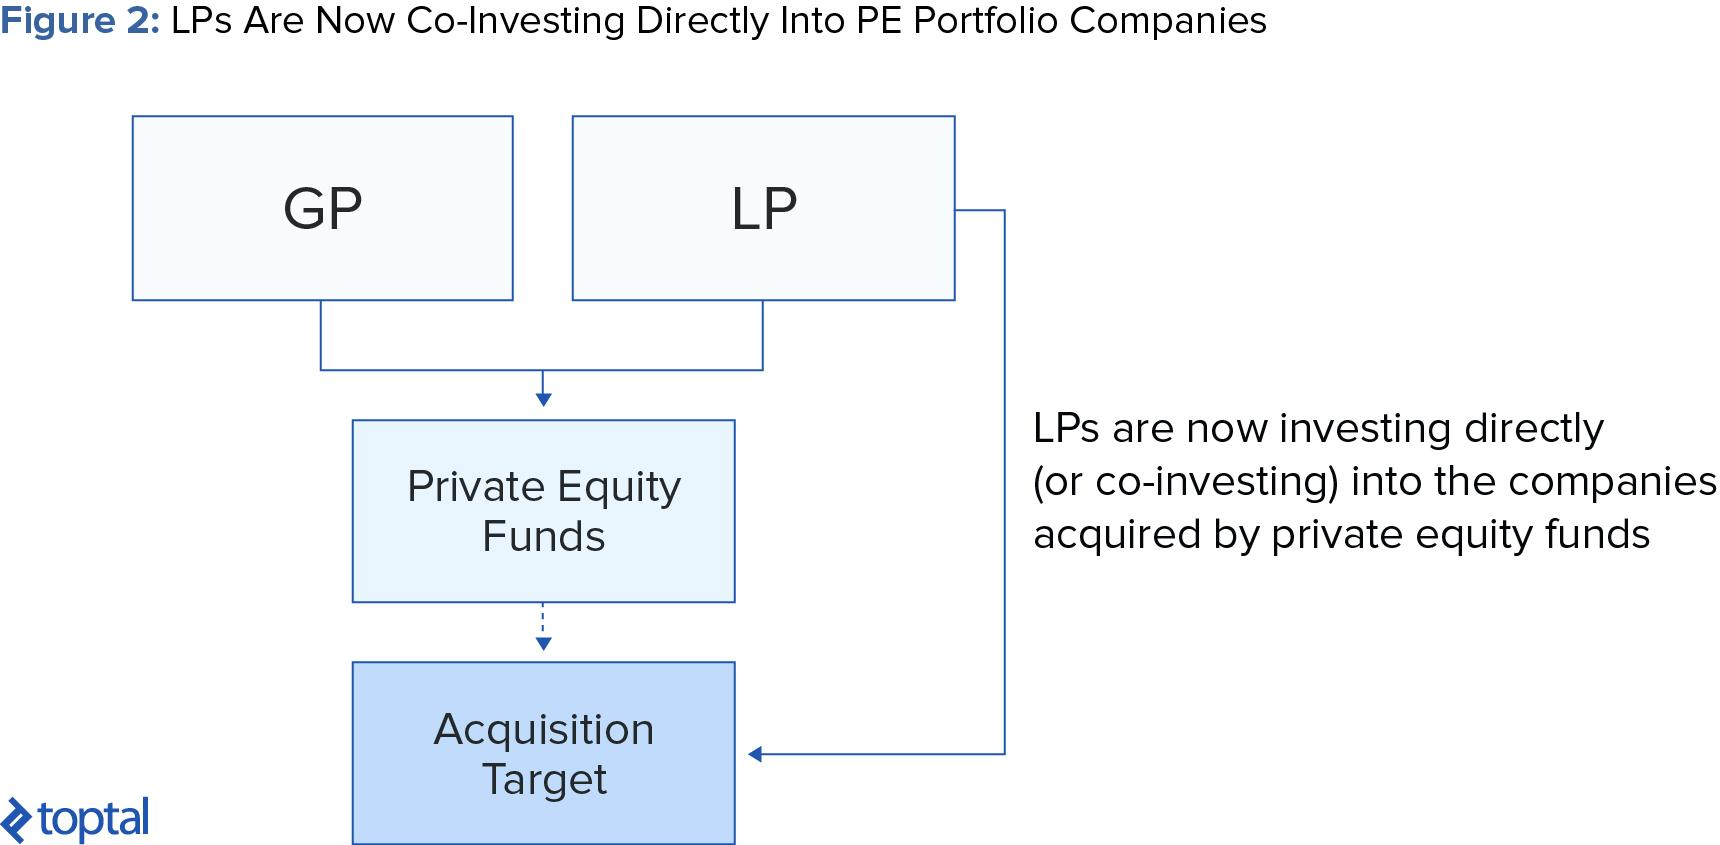 Figure 2: LPs Are Now Co-investing Directly into PE Portfolio Companies